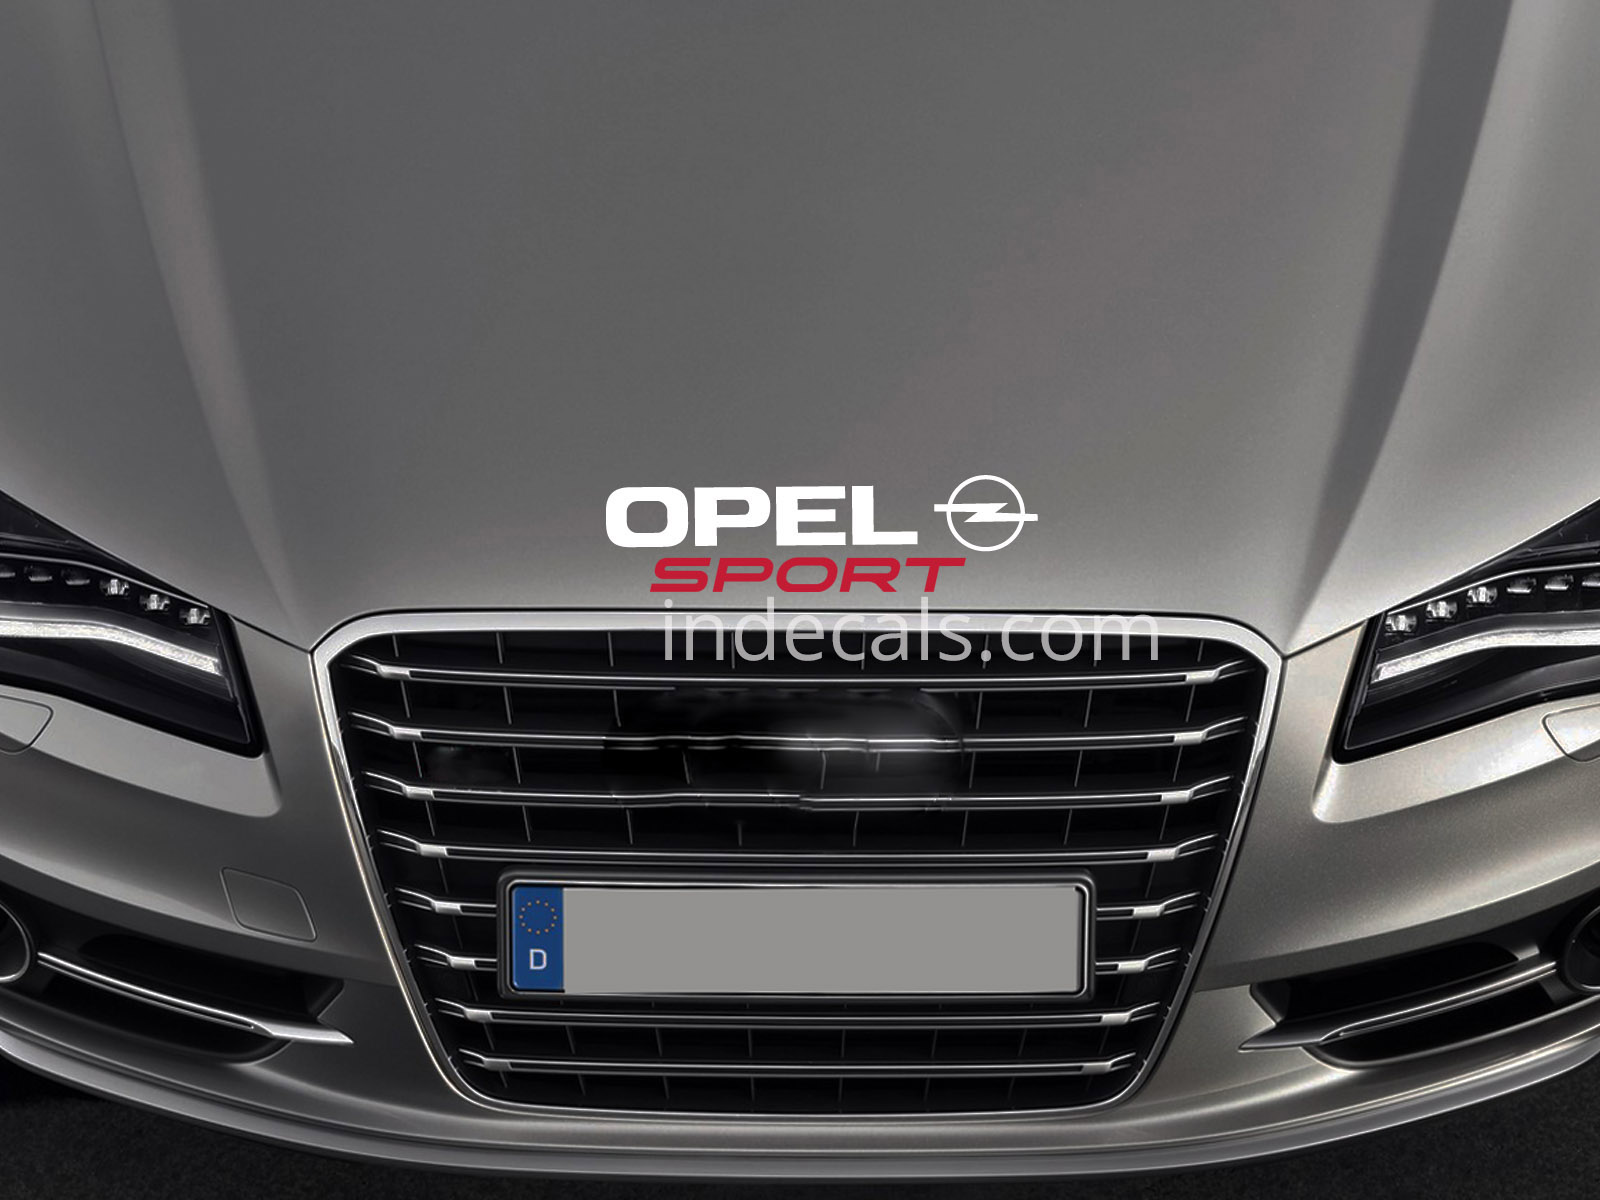 1 x Opel Sport Sticker for Bonnet - White & Red